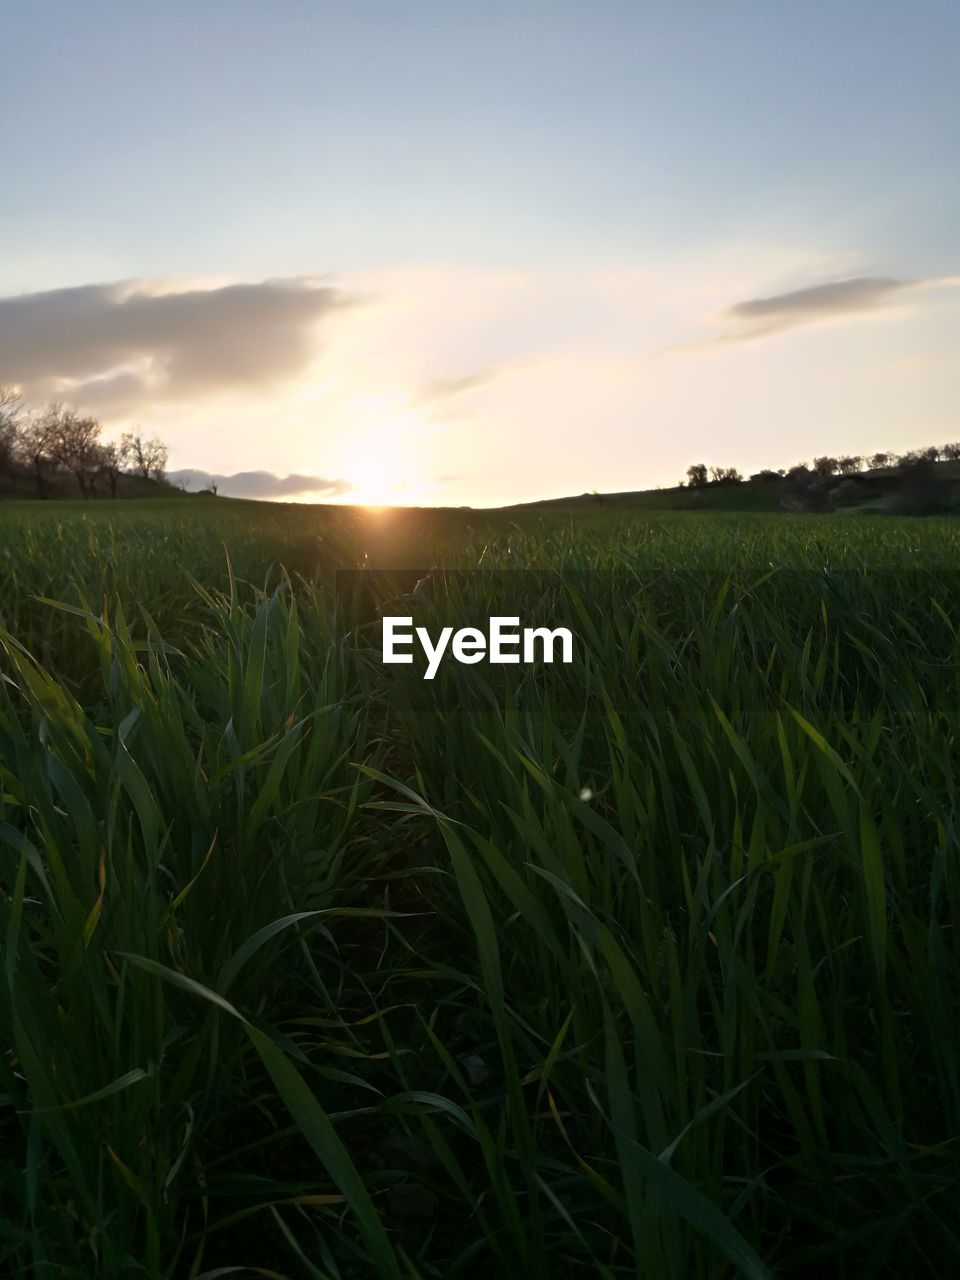 field, agriculture, growth, nature, sunset, farm, crop, sun, tranquility, cereal plant, landscape, sky, tranquil scene, scenics, sunlight, rural scene, beauty in nature, sunbeam, no people, outdoors, plant, wheat, grass, ear of wheat, day